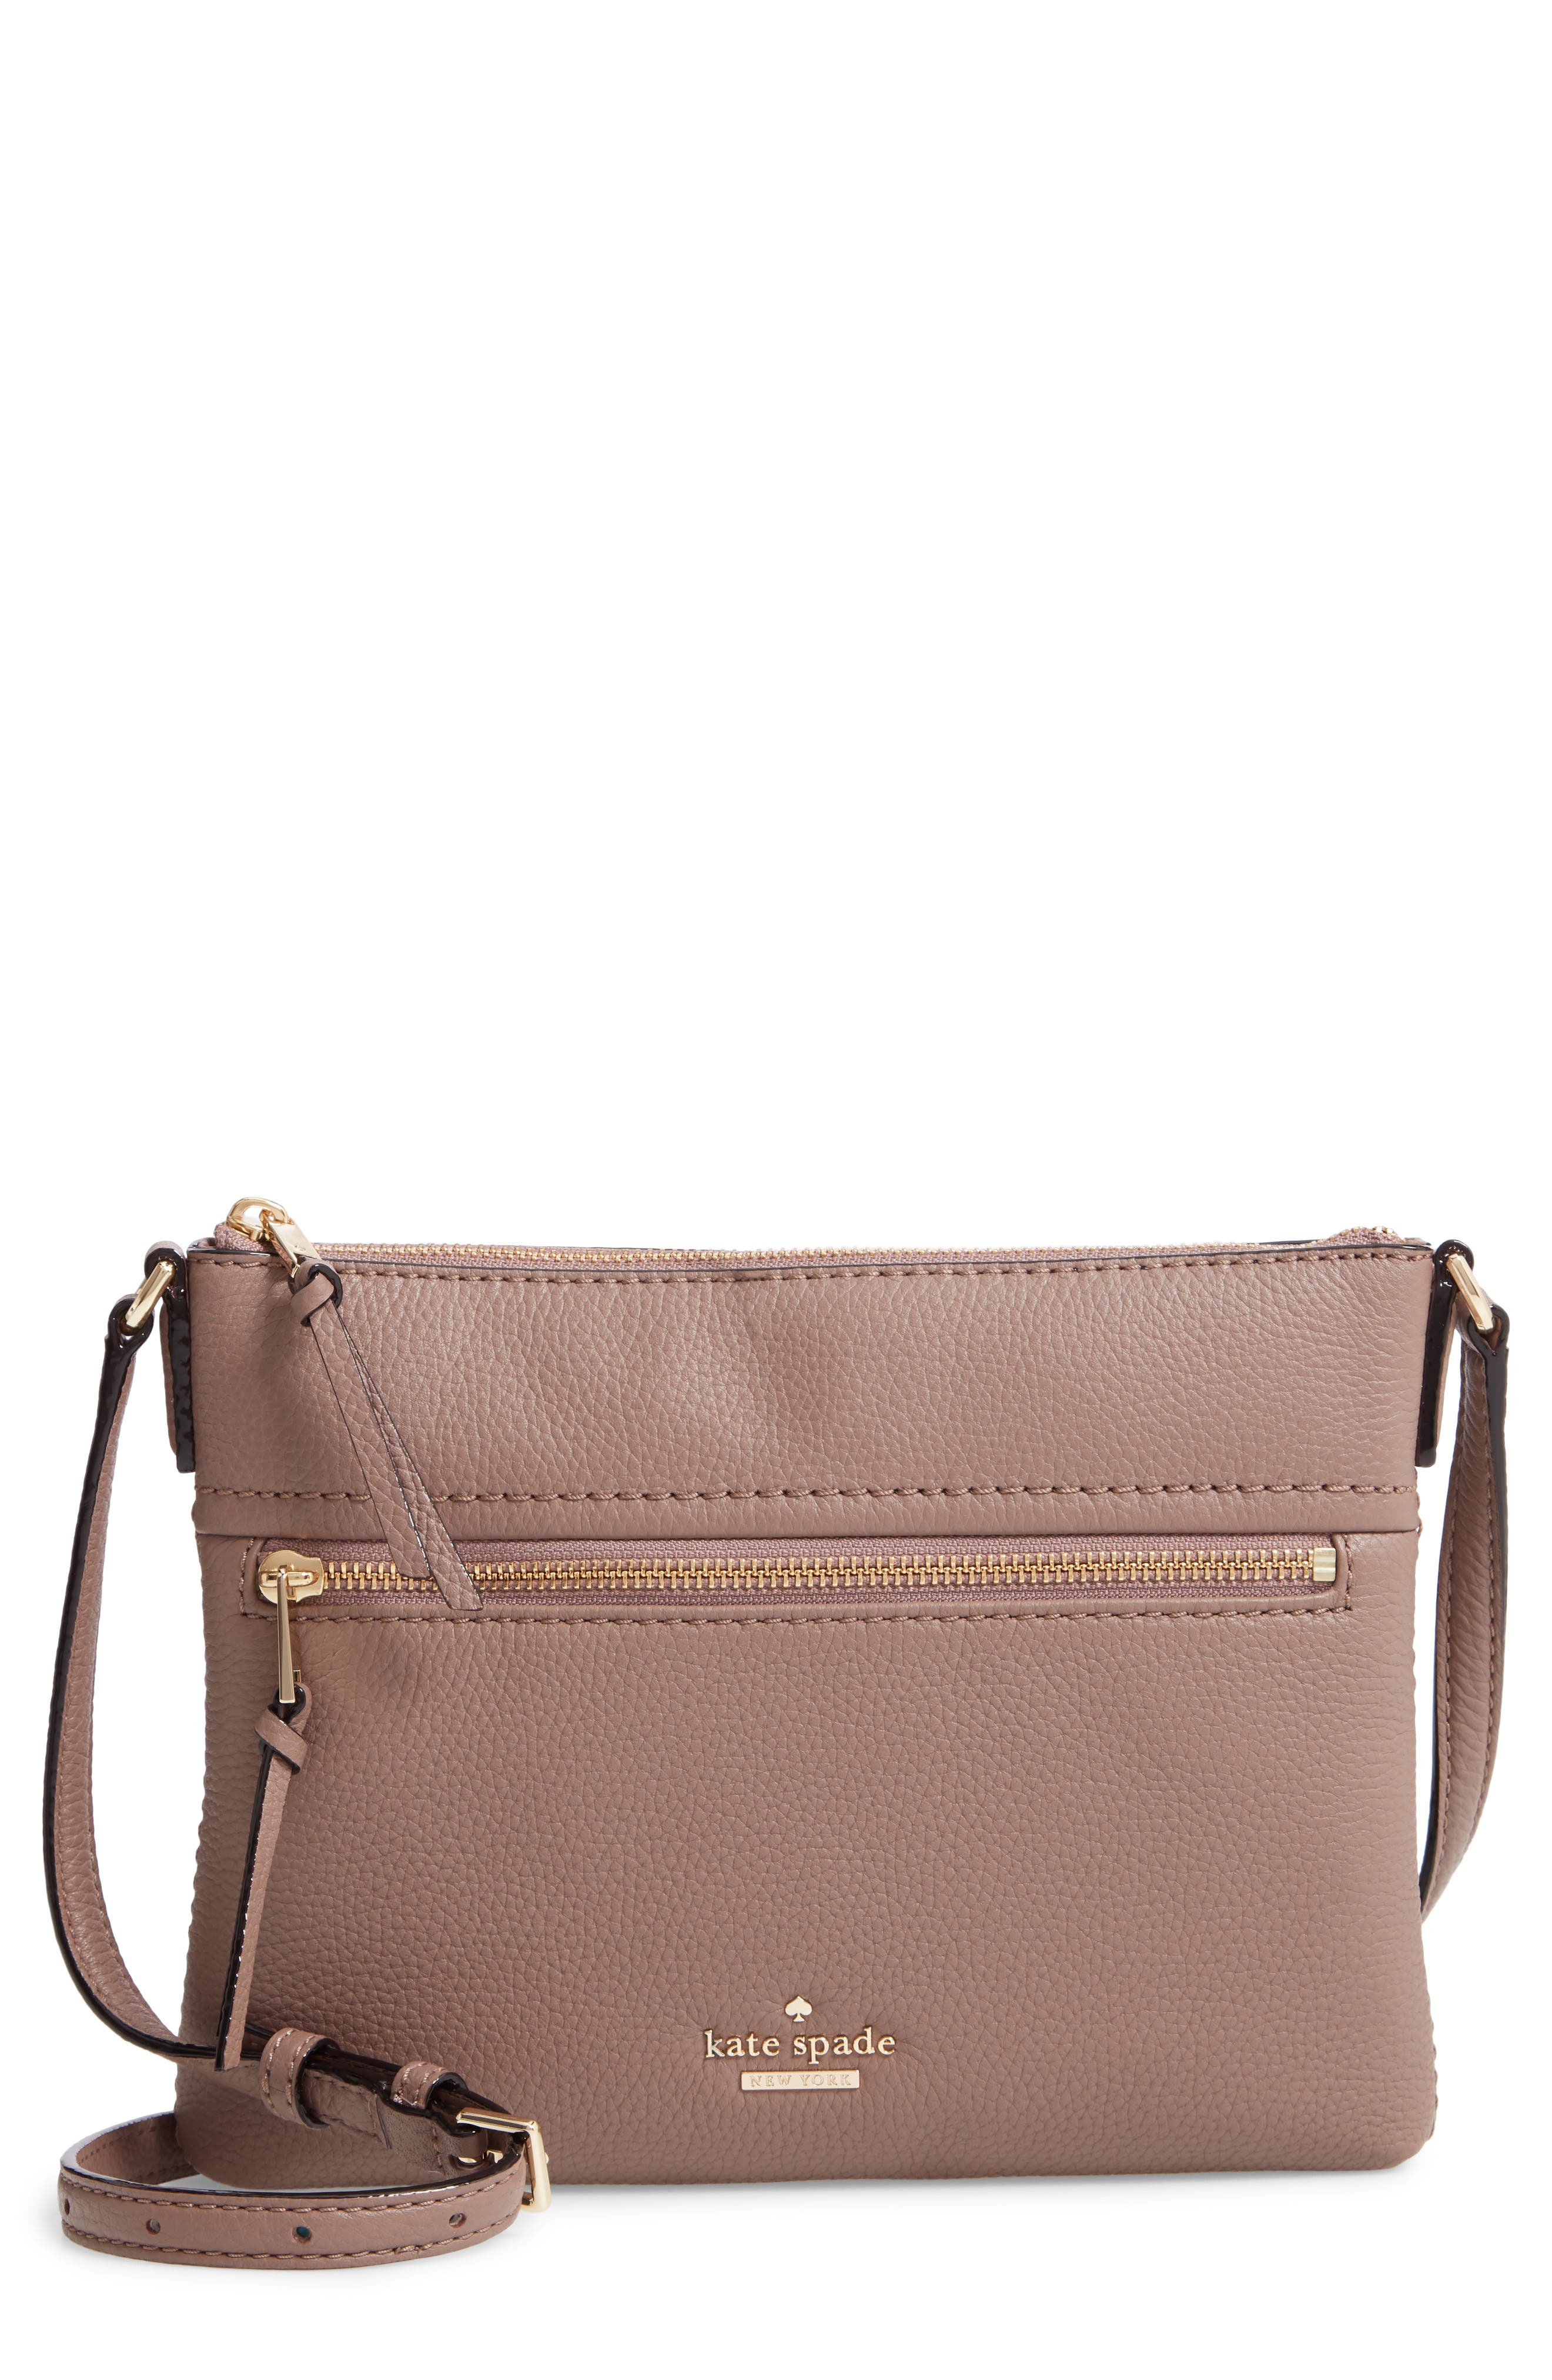 jackson street - gabriele leather crossbody bag,                             Main thumbnail 1, color,                             BROWNSTONE